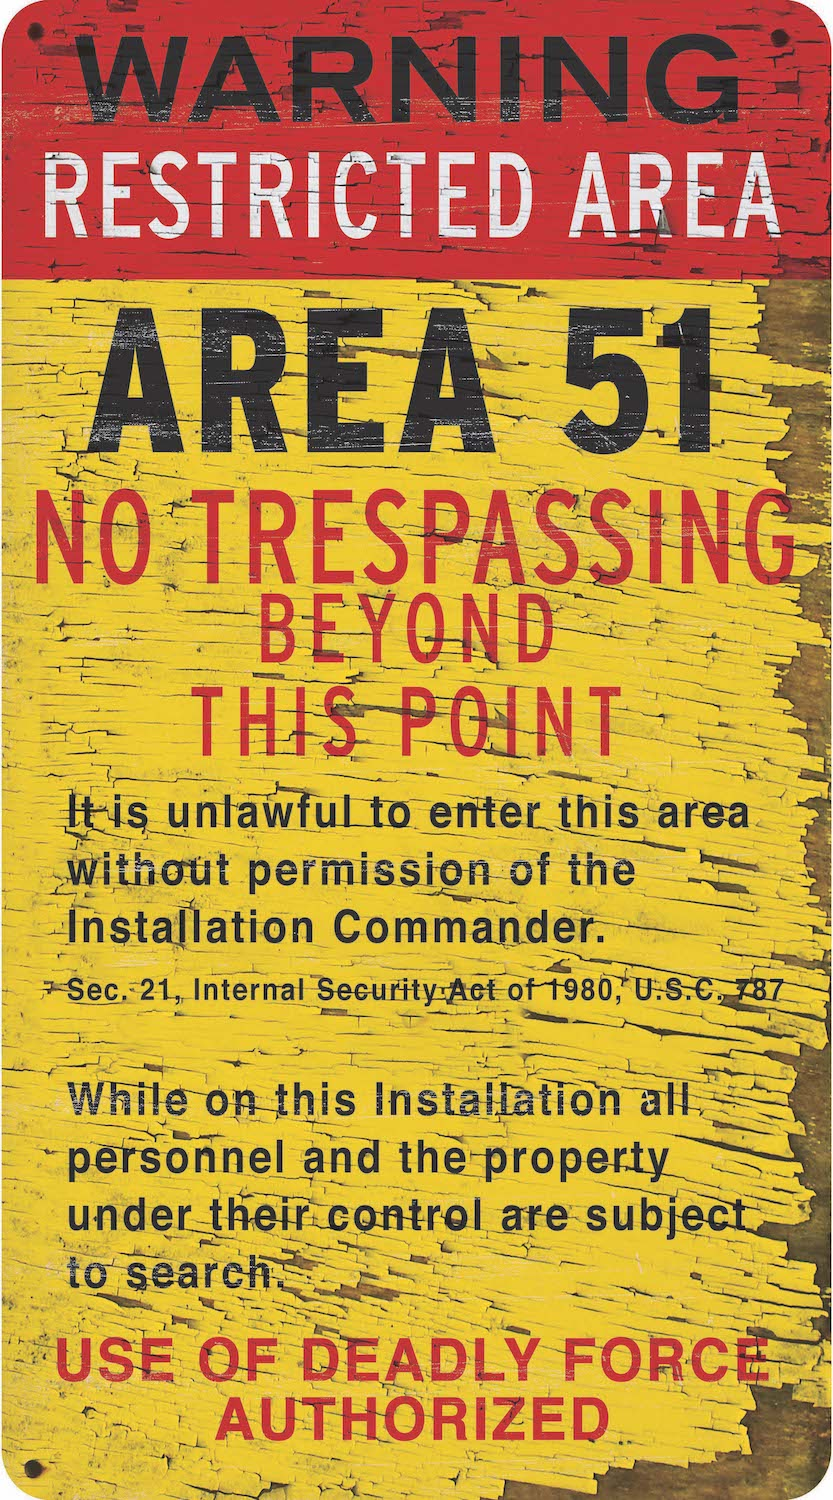 WARNING area51 10x18.jpg